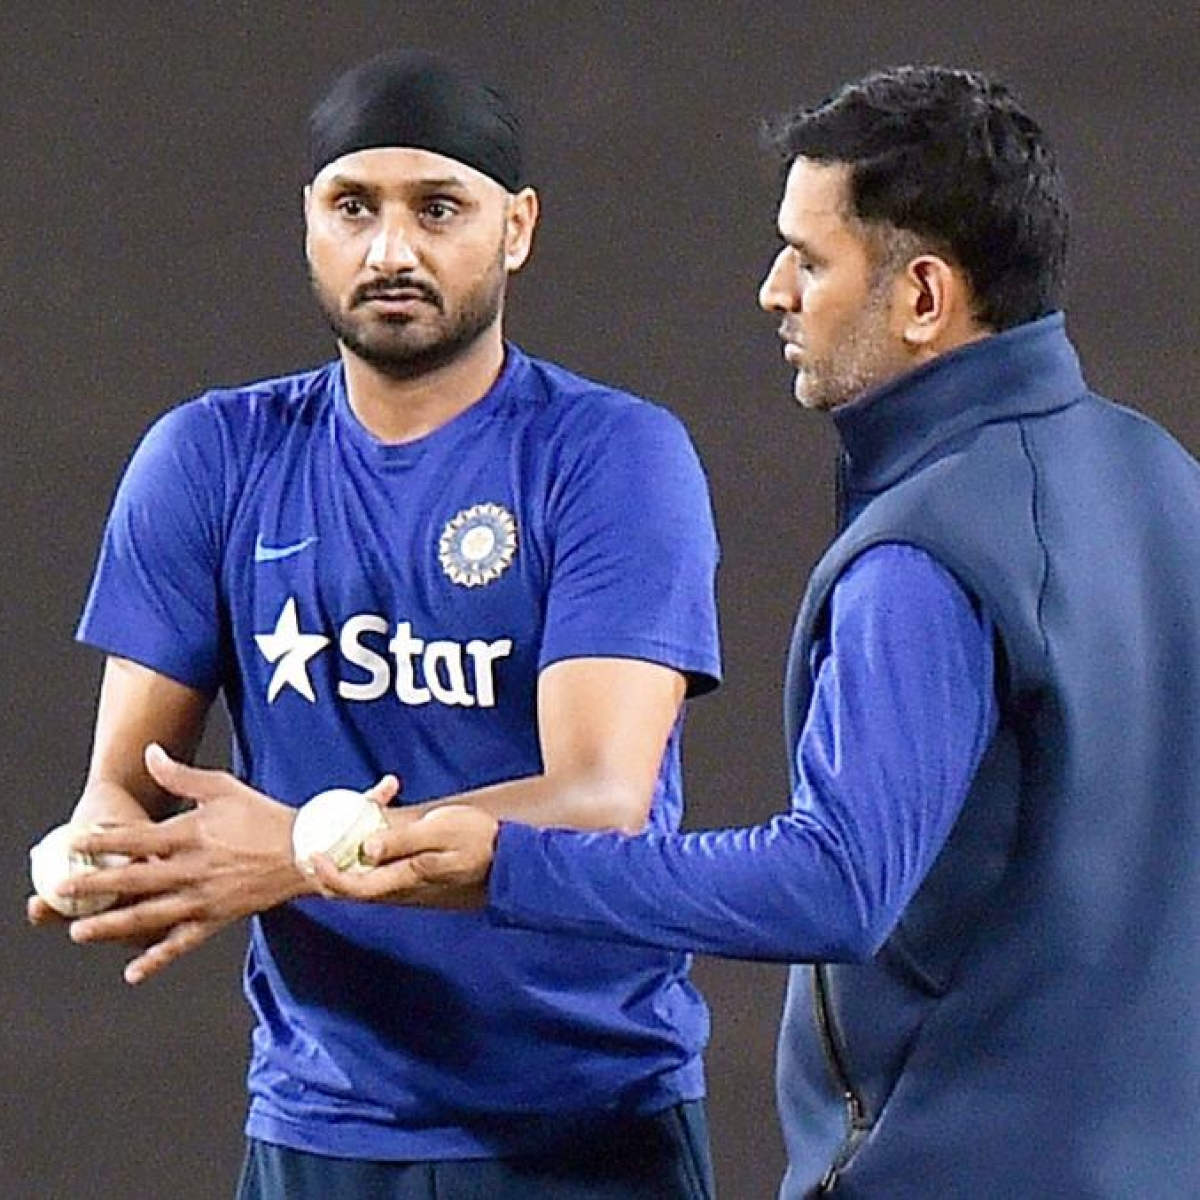 'He does not want to wear India's jersey': Harbhajan Singh on MS Dhoni